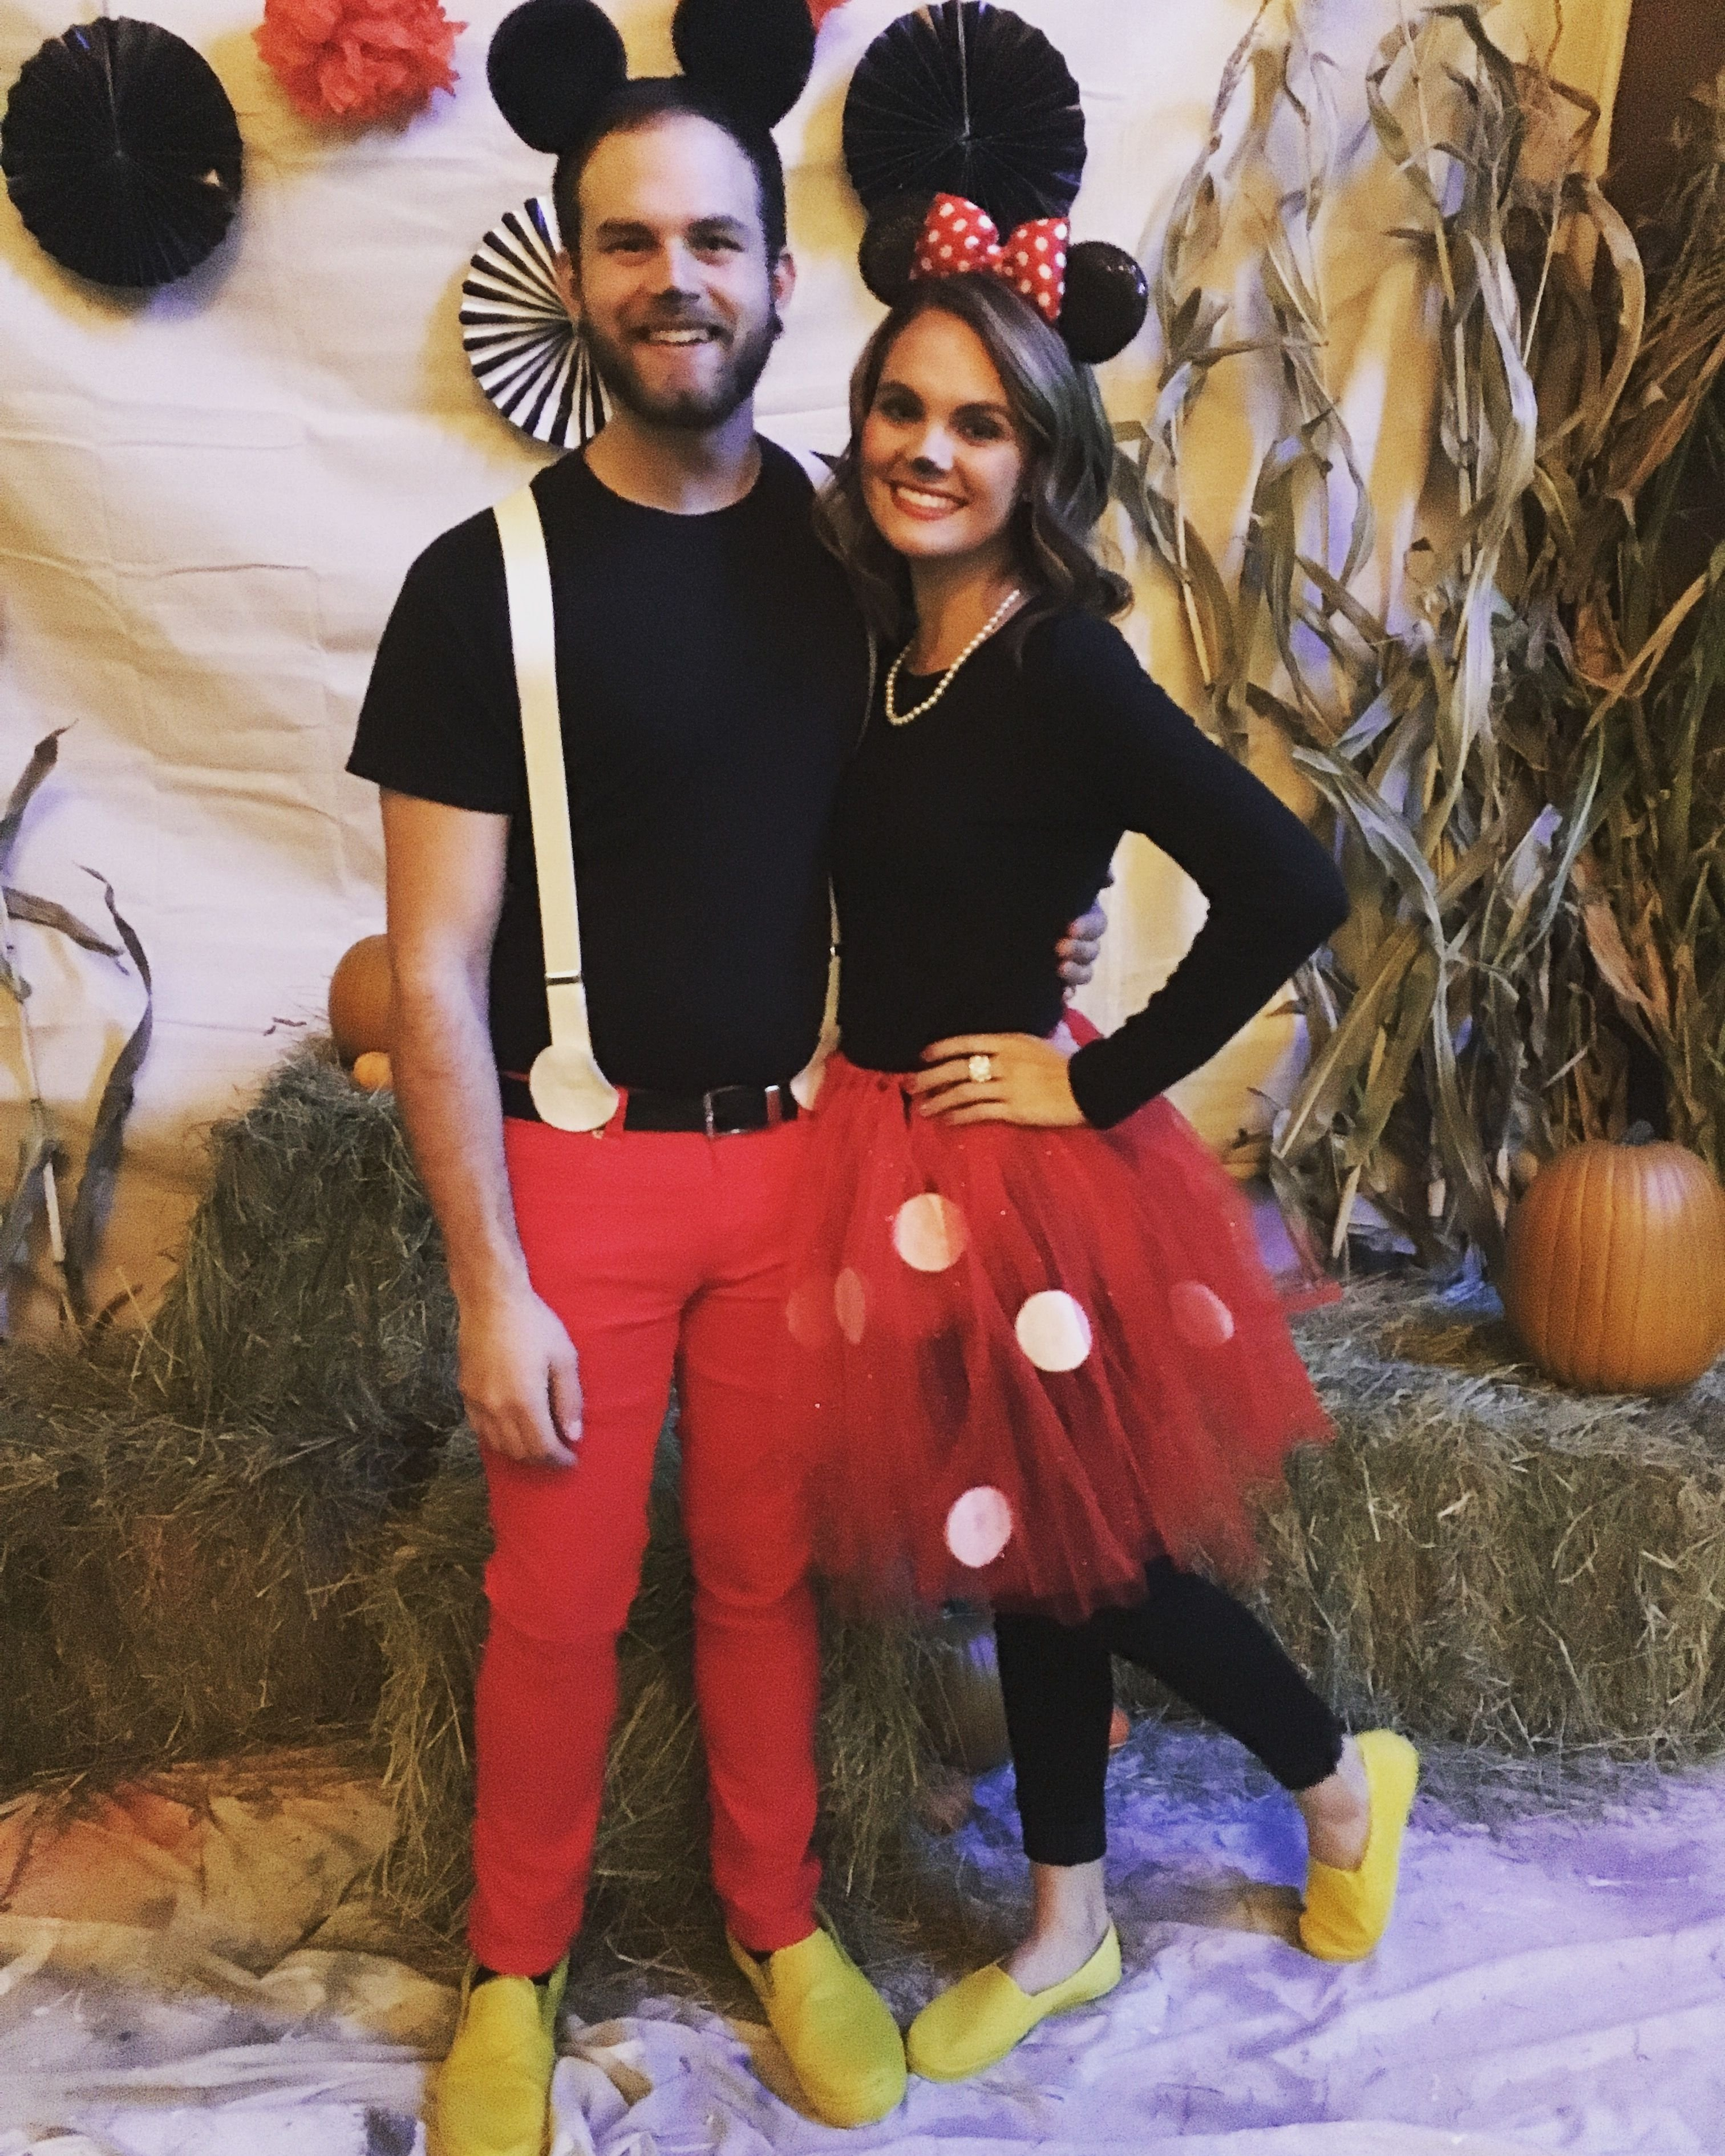 10 Stunning Cute Costume Ideas For Couples mickey and minnie mouse halloween couple costume 5 2021